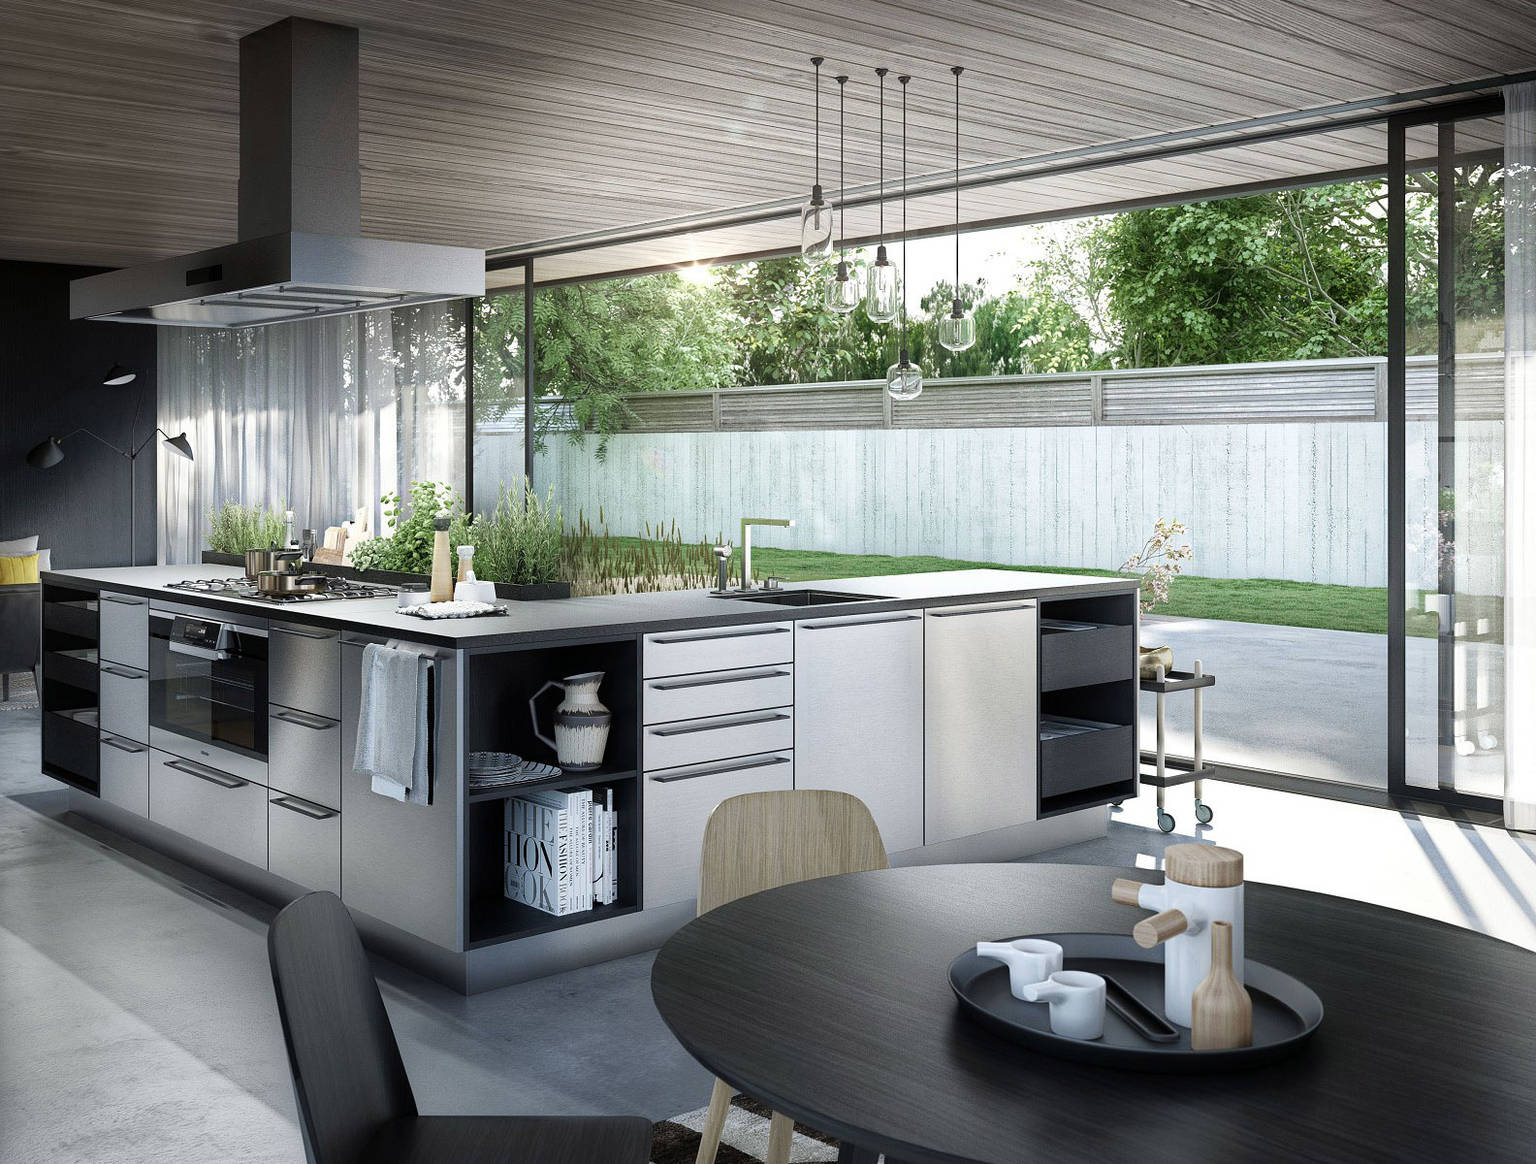 SieMatic Urban SE kitchen island in graphite oak and stainless steel with herb garden and breakfast bar